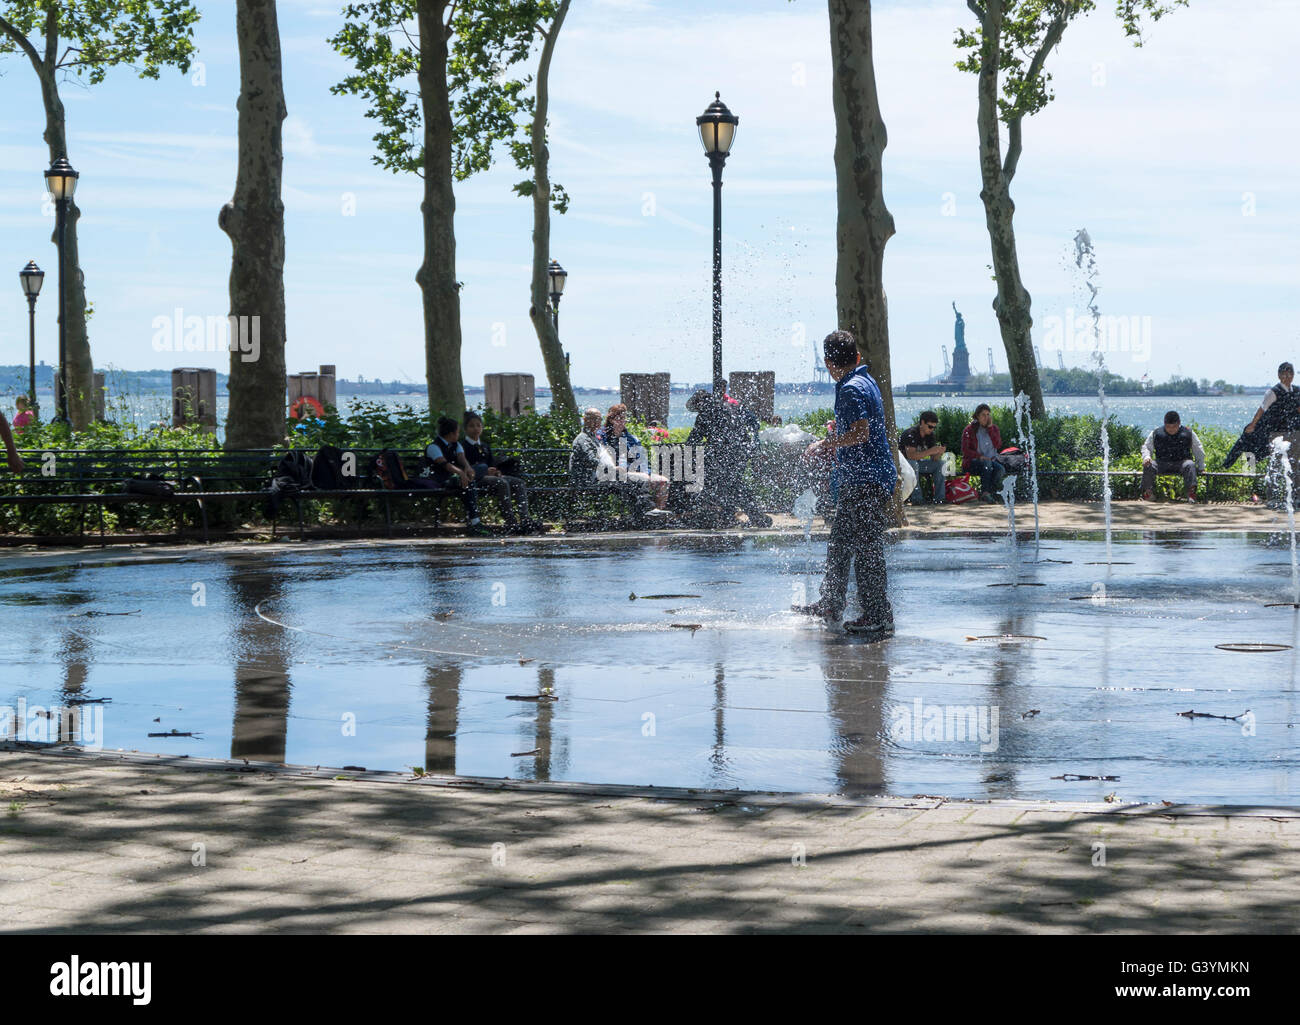 Teenage boys keeping cool in Summer by running through a public water fountain and messing about in Battery Park, - Stock Image